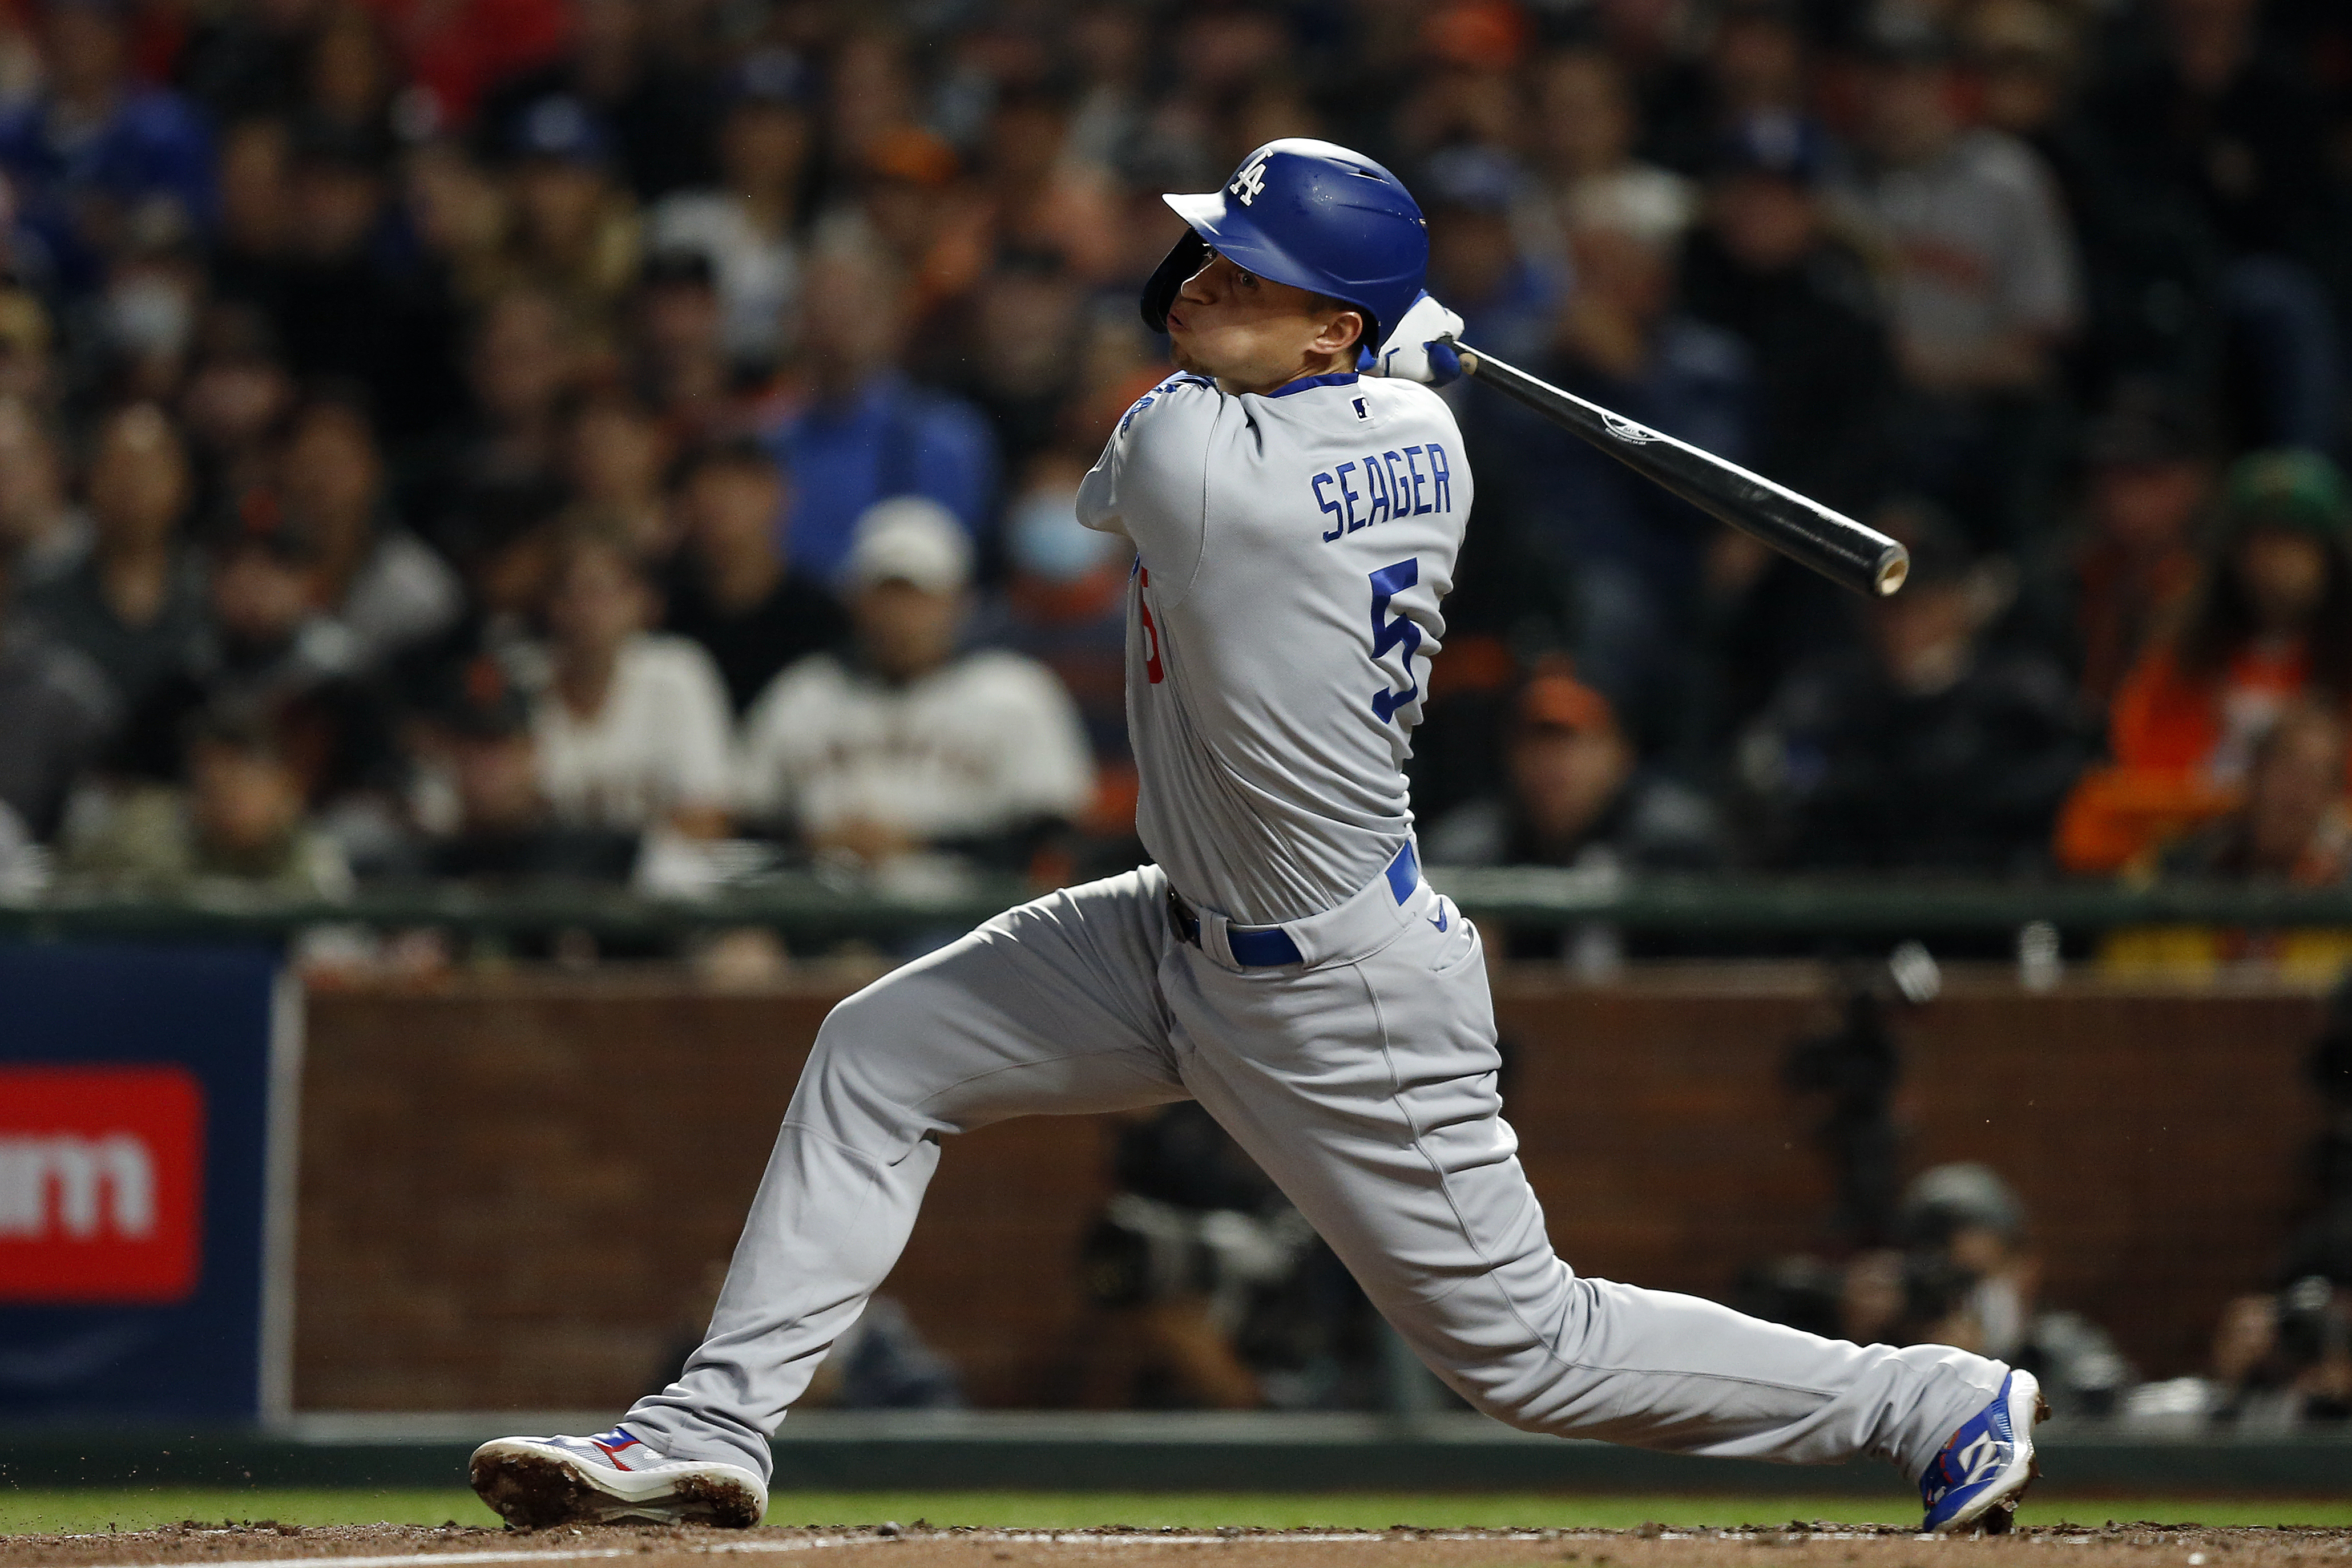 Corey Seager #5 of the Los Angeles Dodgers hits an RBI double in the sixth inning during Game 5 of the NLDS between the Los Angeles Dodgers and the San Francisco Giants at Oracle Park on Thursday, October 14, 2021 in San Francisco, California.